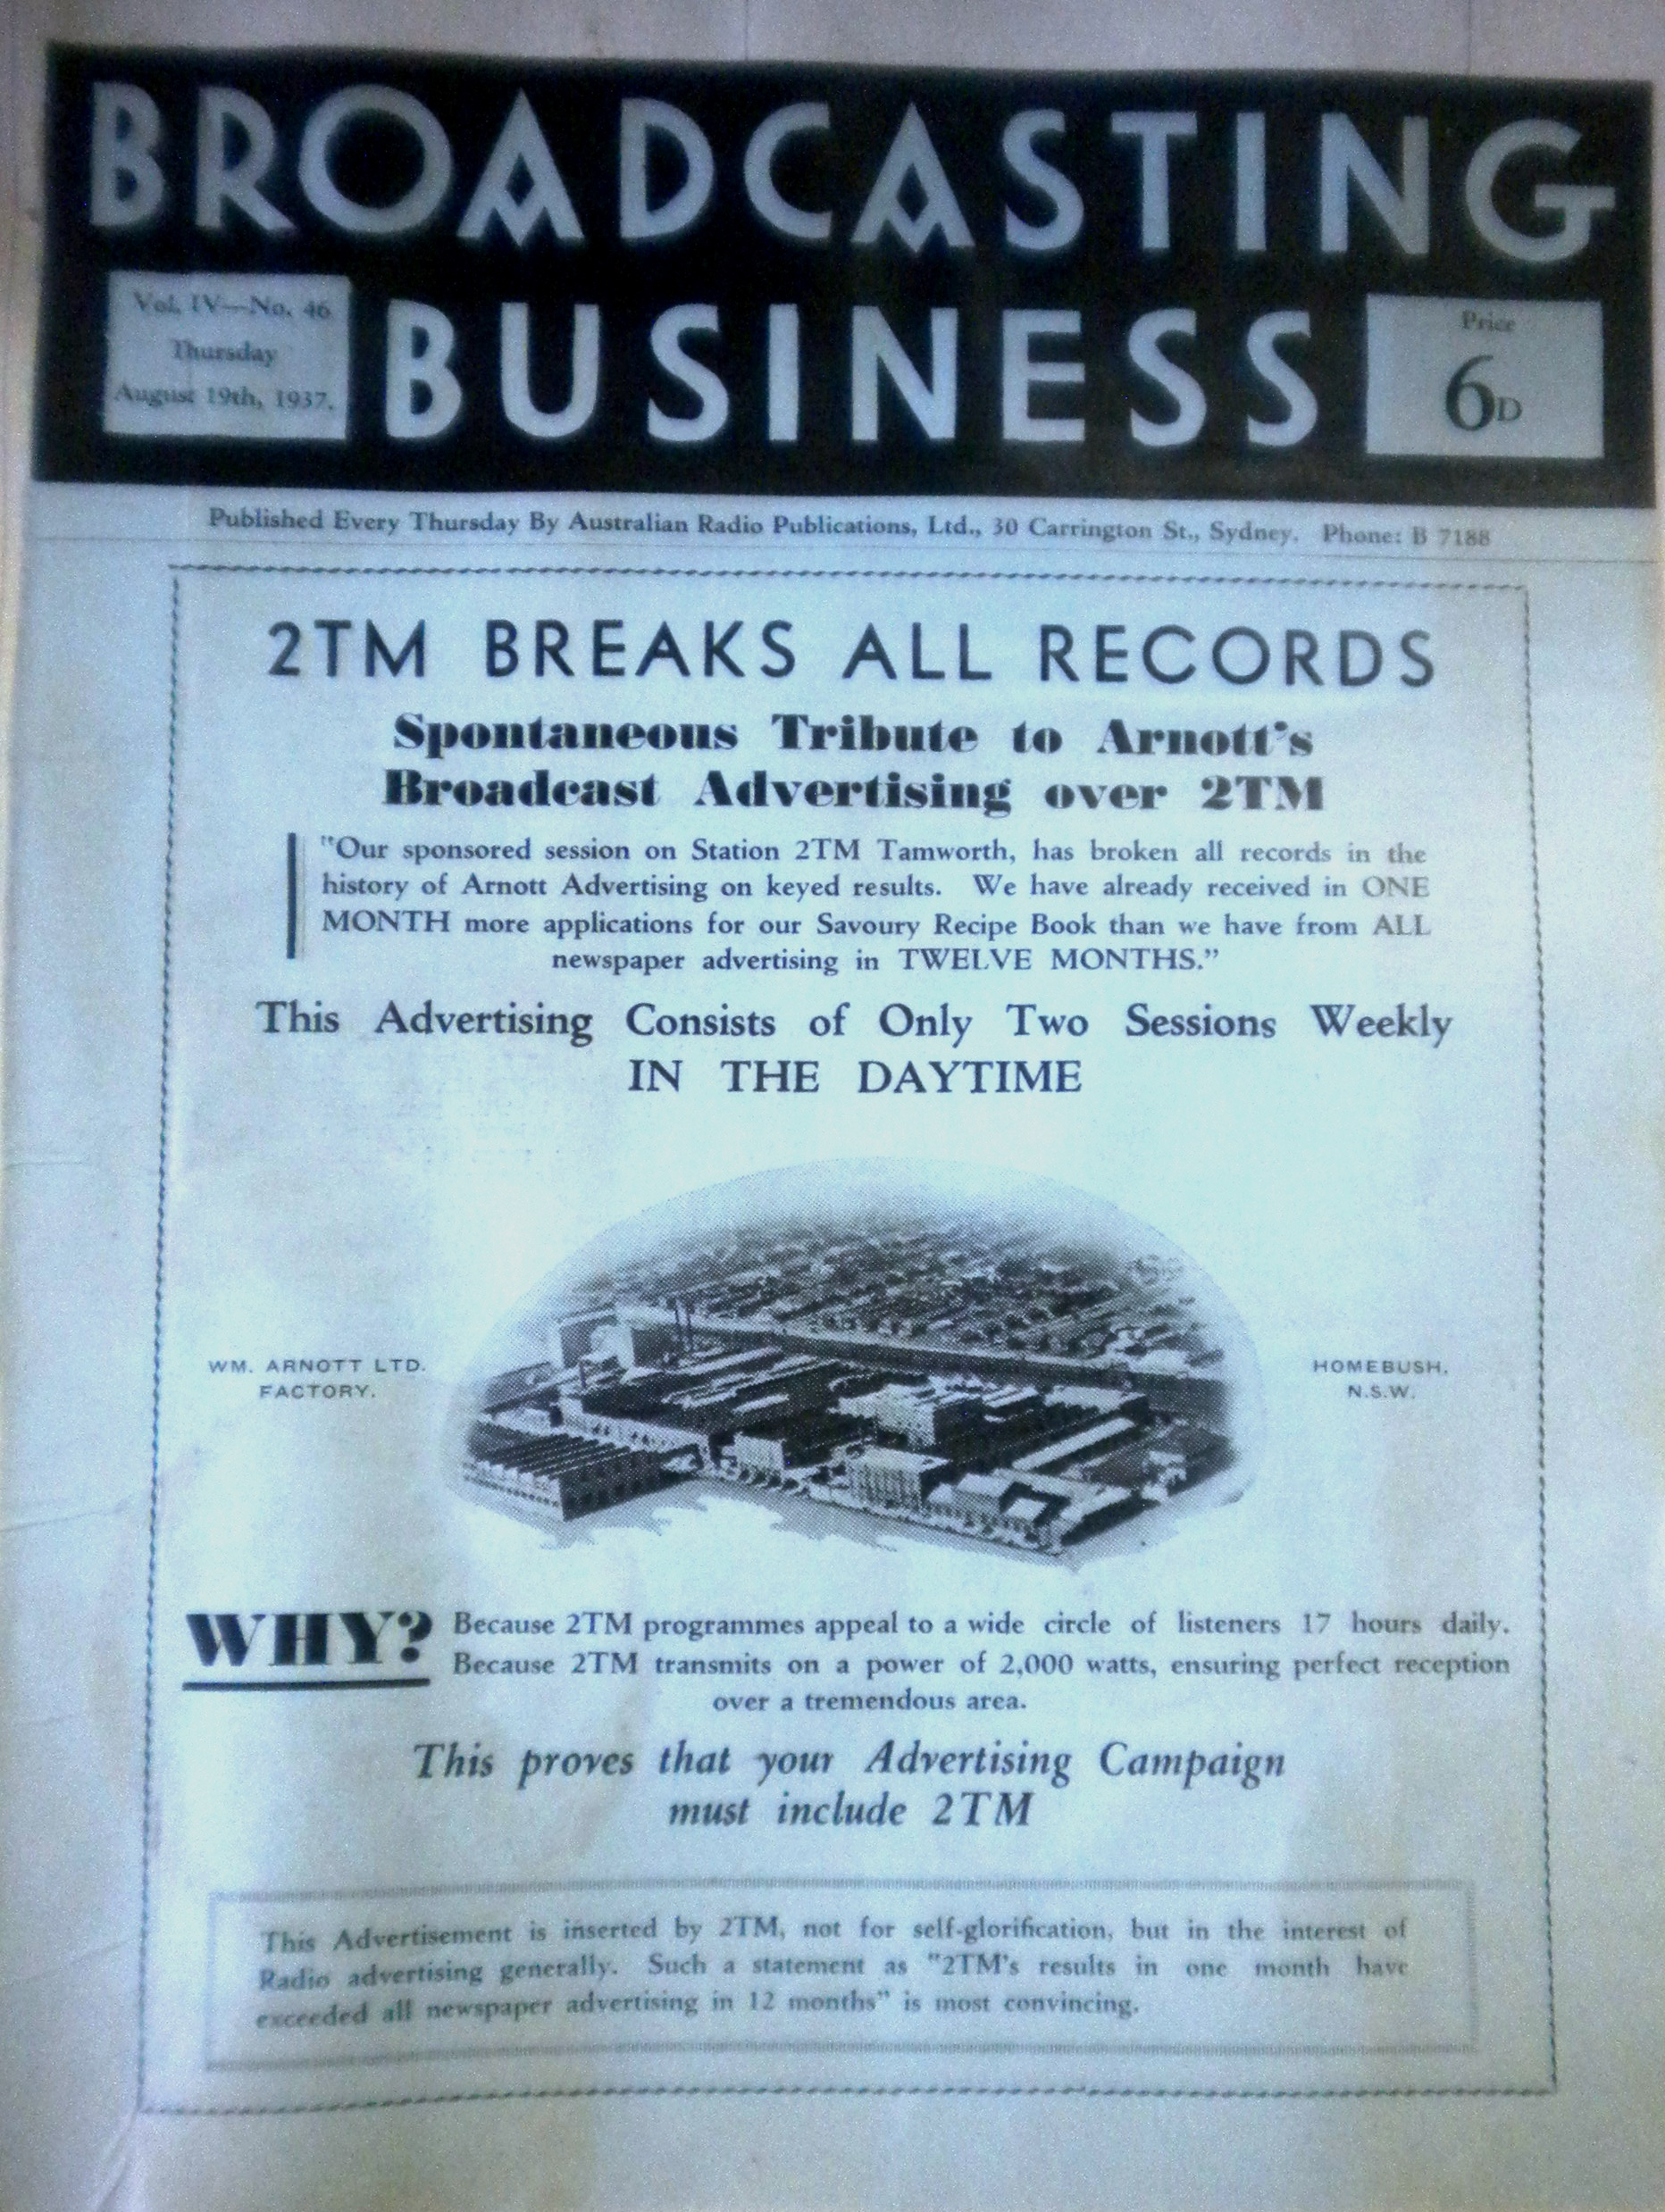 2TM Breaks all records with Arnotts in 1937